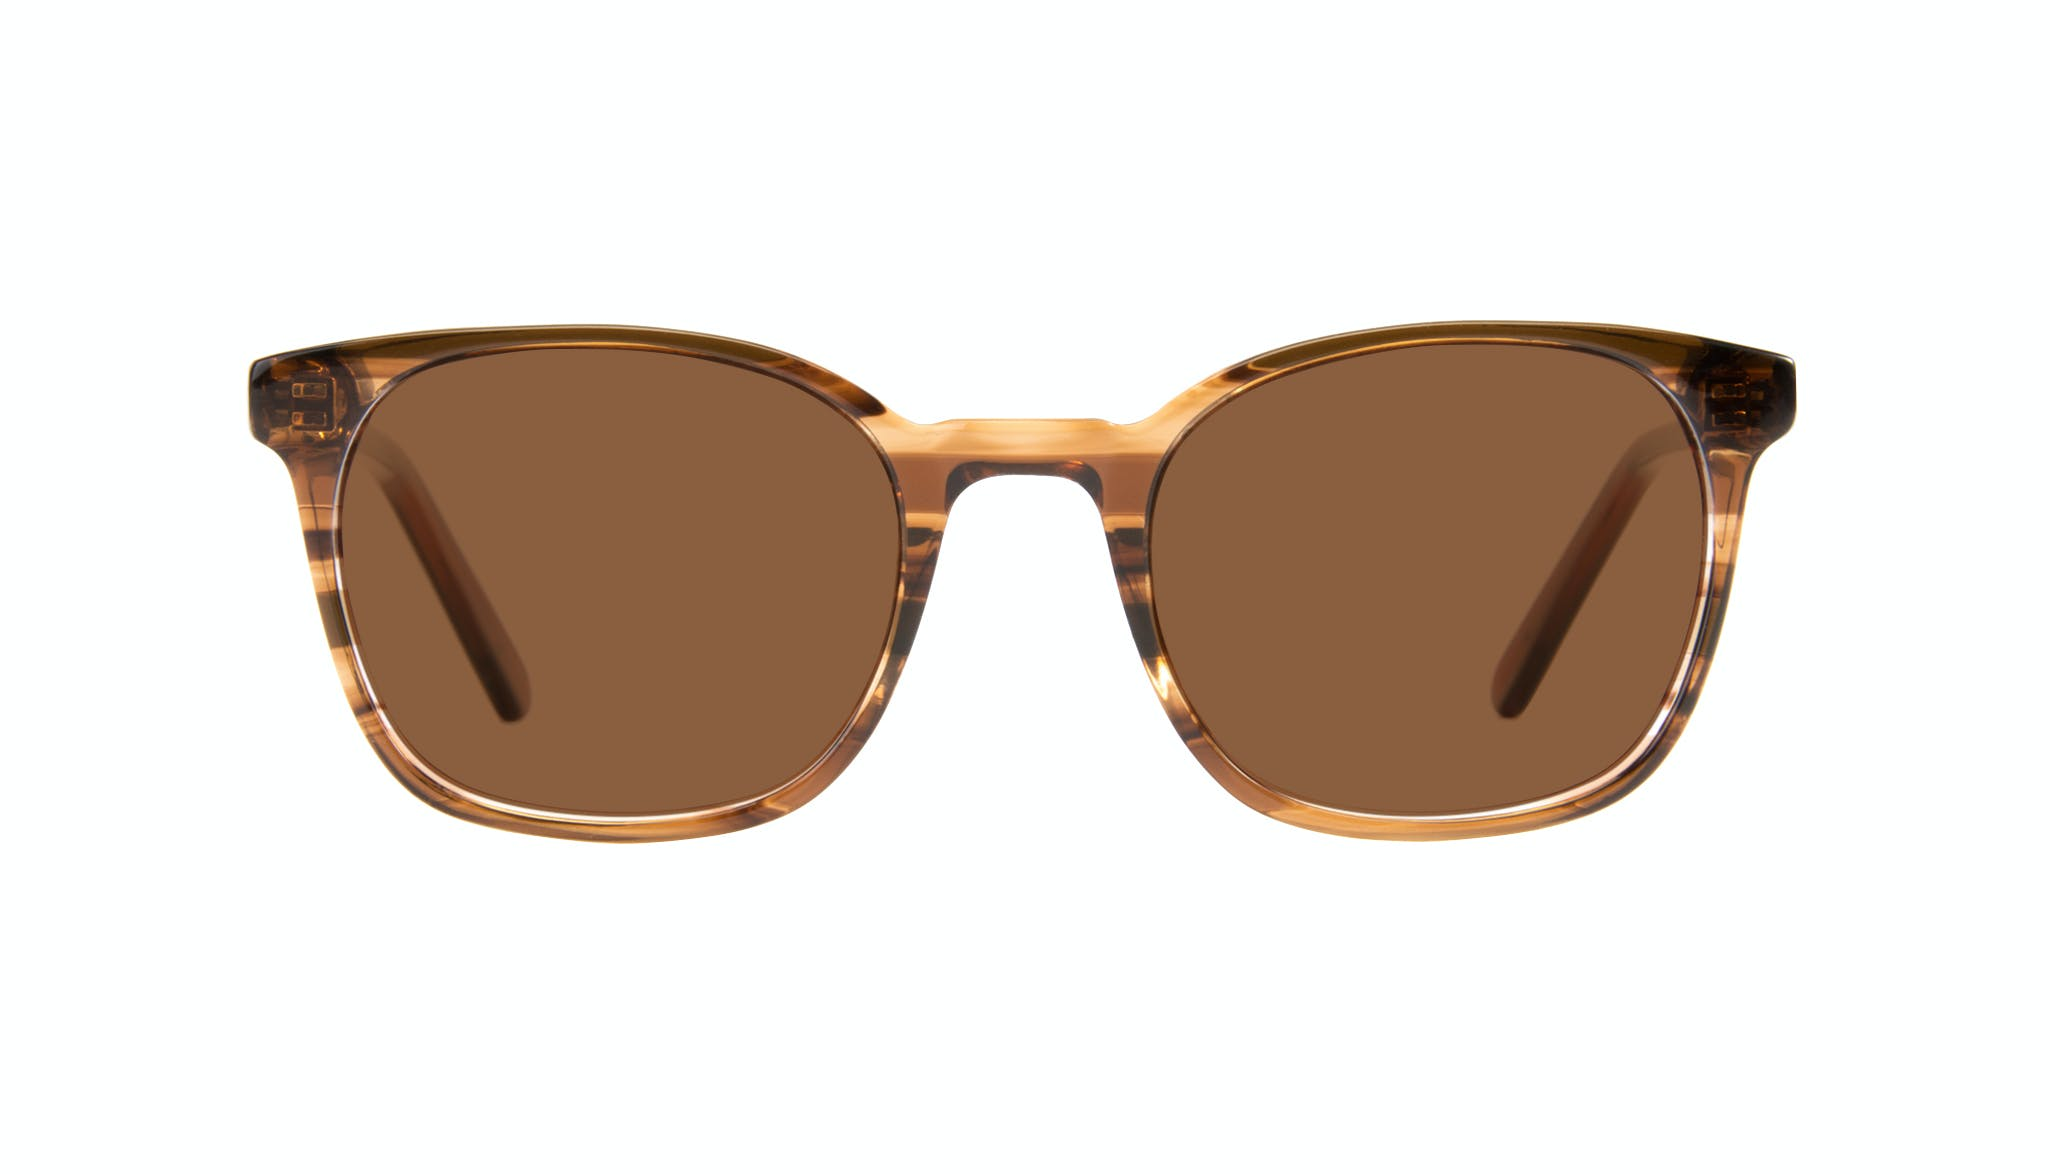 Affordable Fashion Glasses Rectangle Square Sunglasses Men Peak Wood